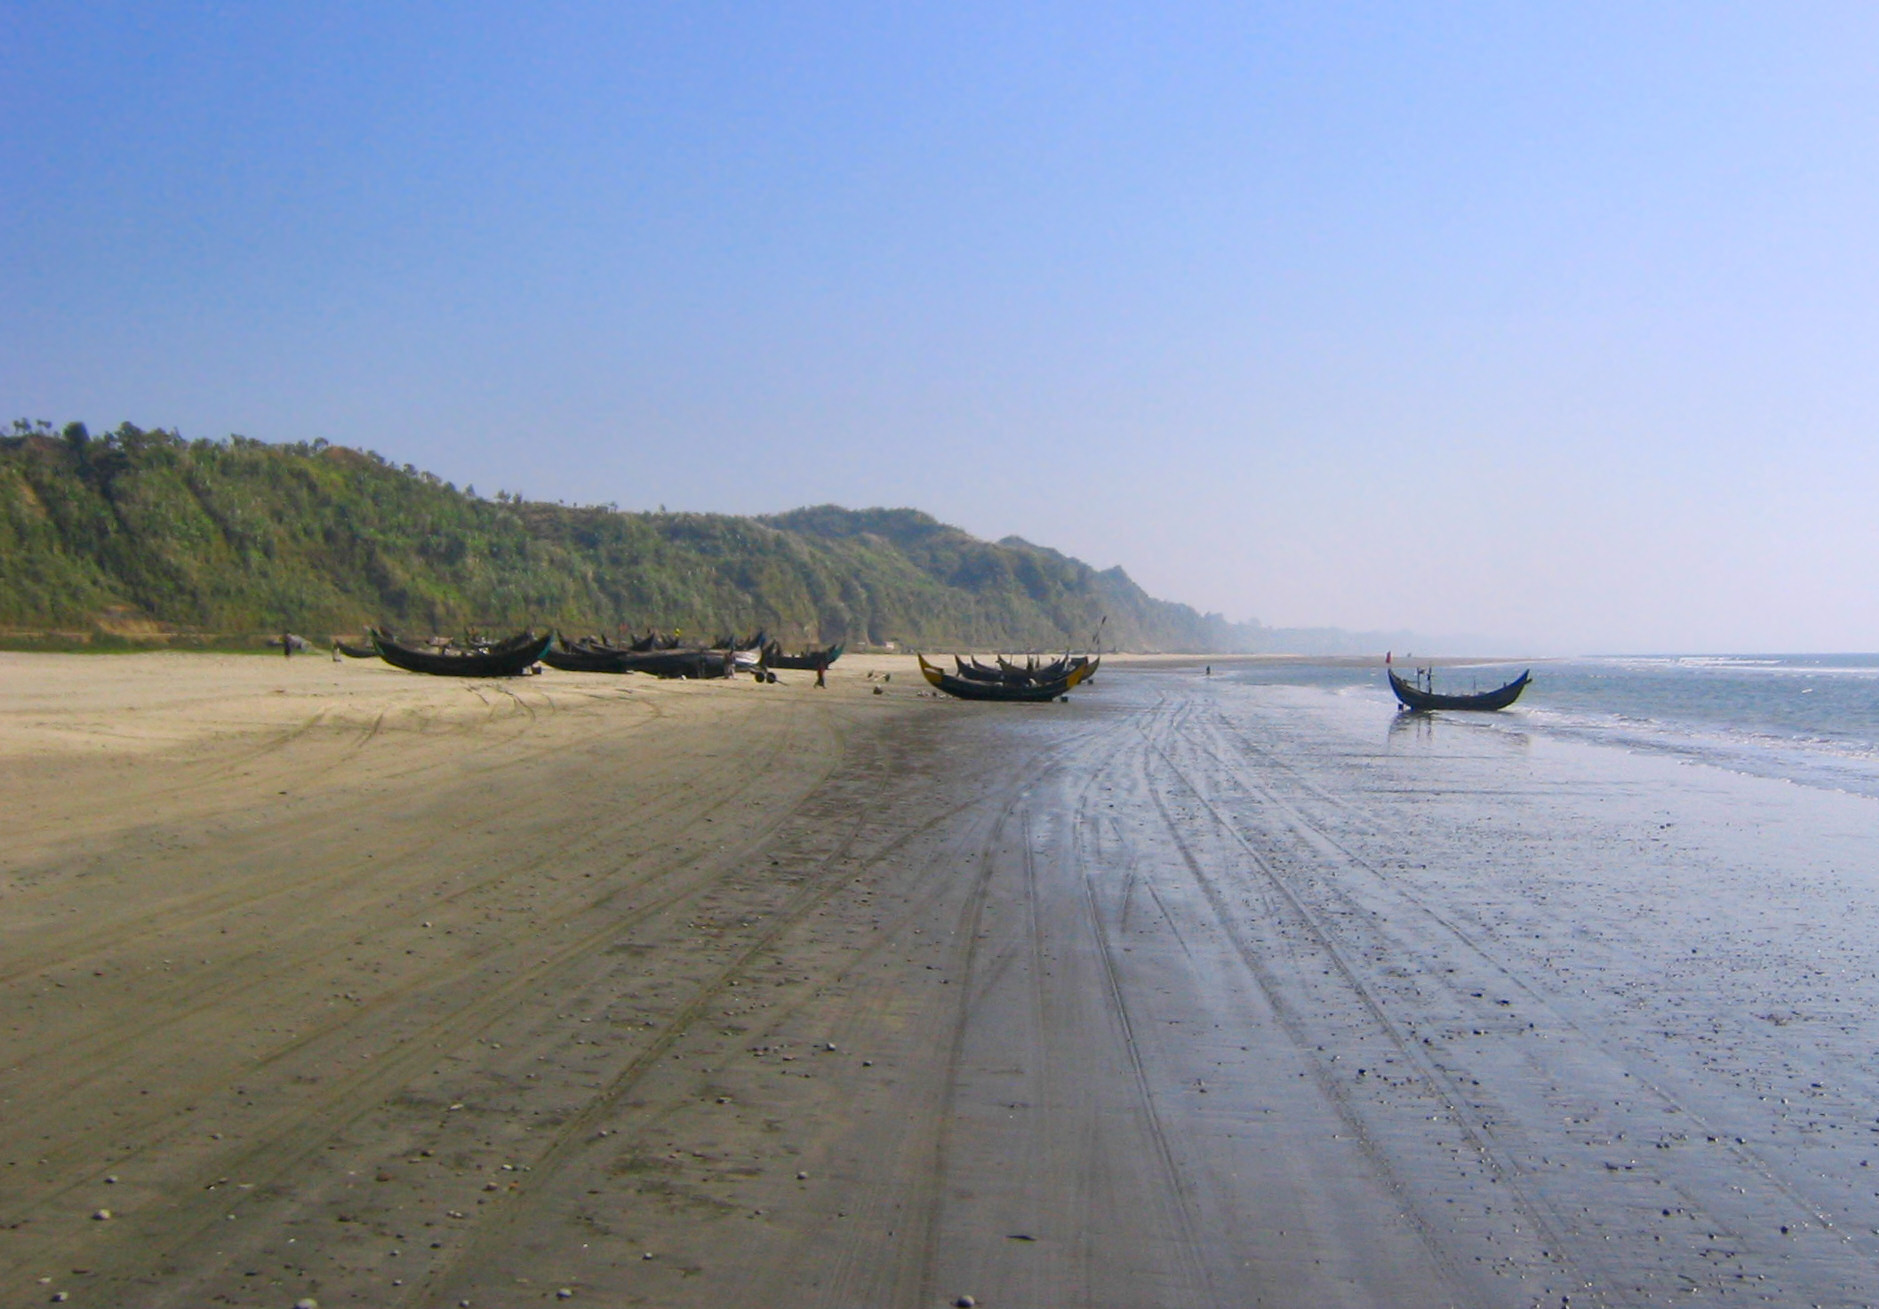 Bazar Beach is 75 miles long and is one of the longest beaches in the world.